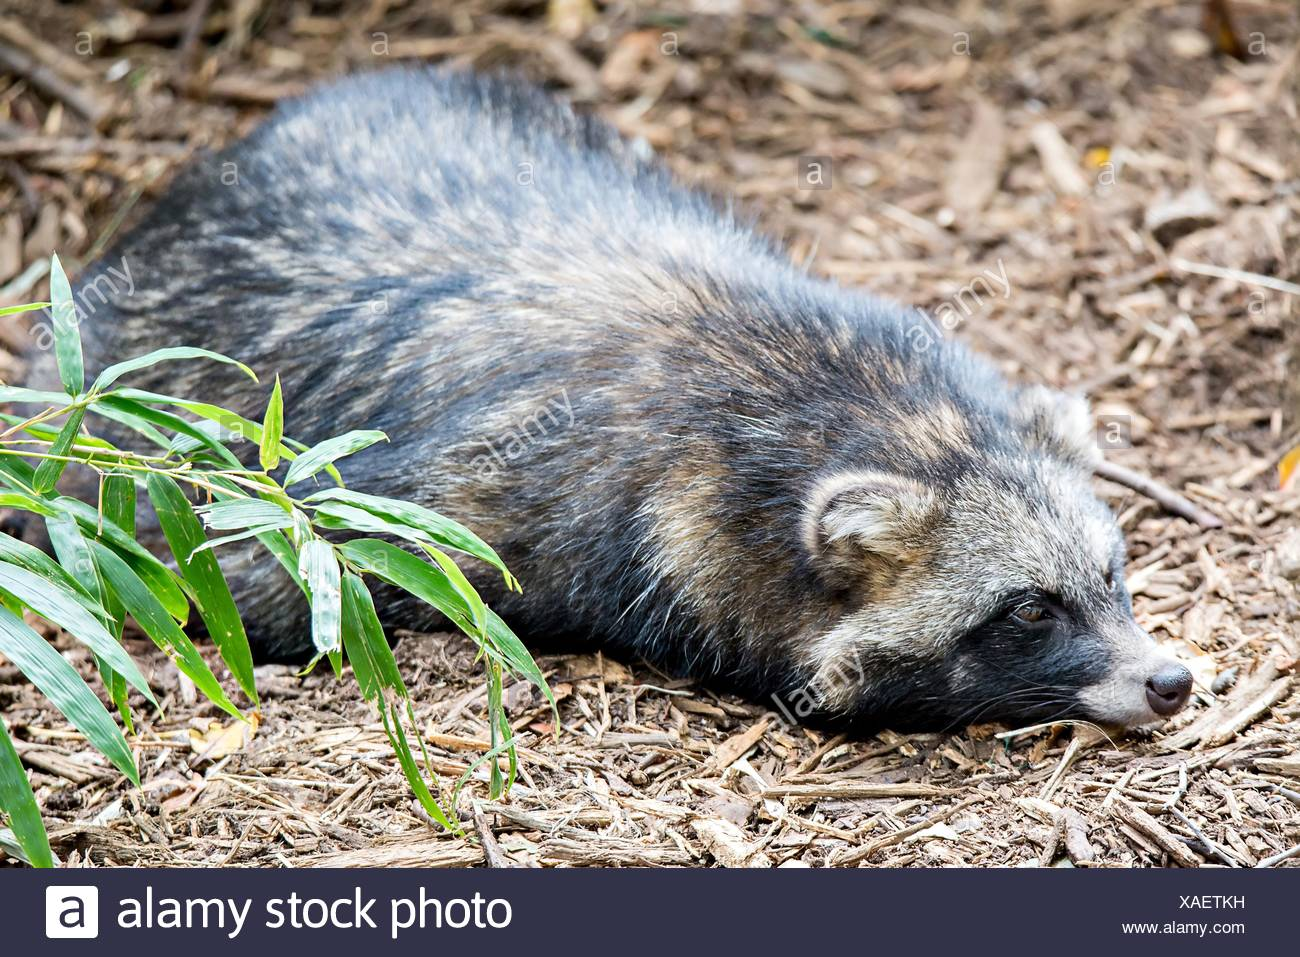 Cute Racoon Dog On Ground At Zoo